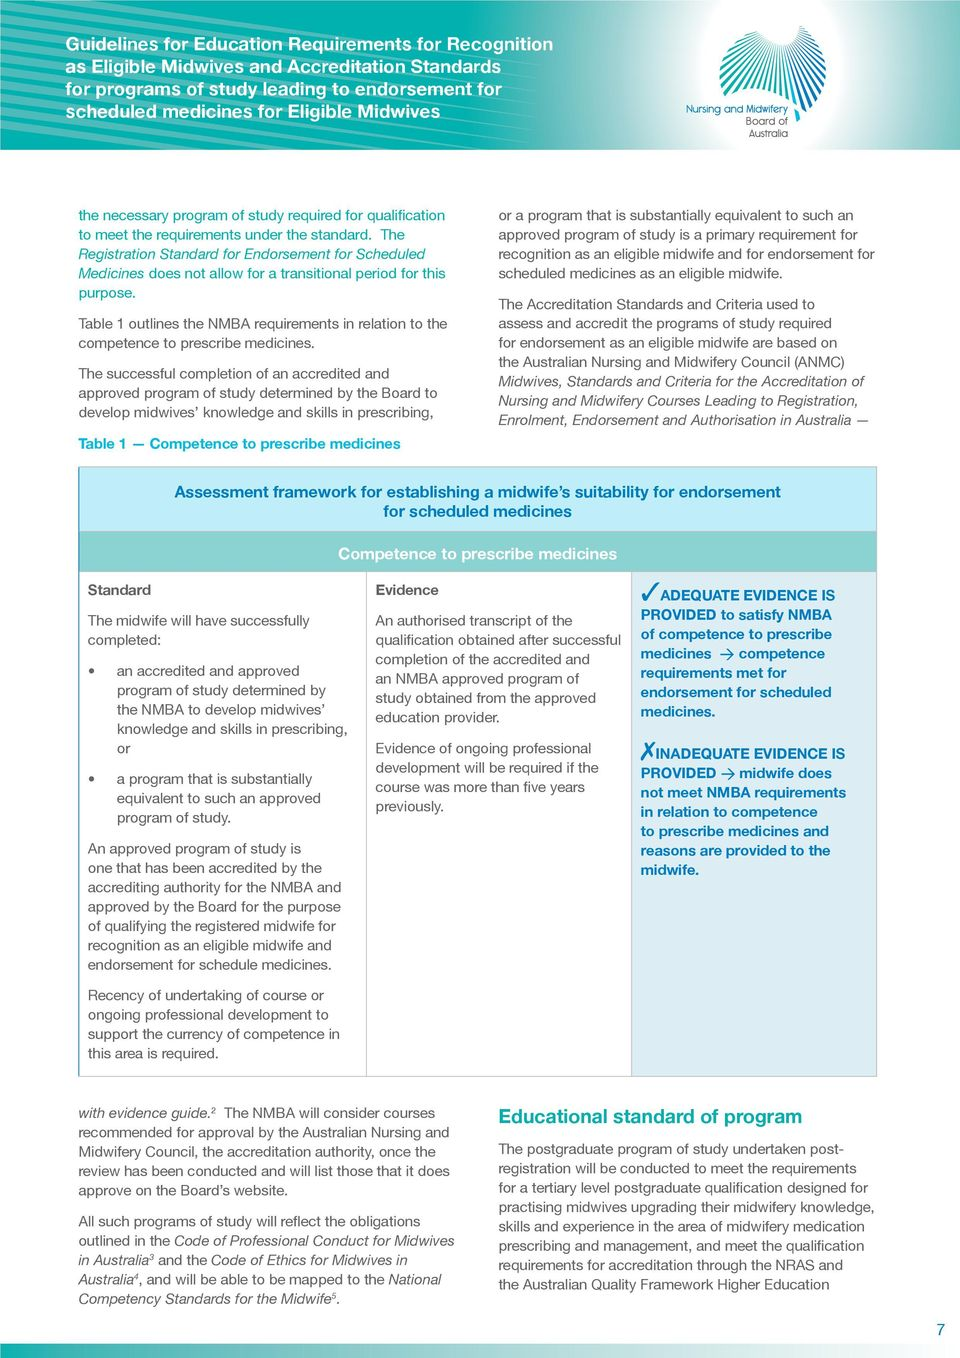 Table 1 outlines the NMBA requirements in relation to the competence to prescribe medicines.